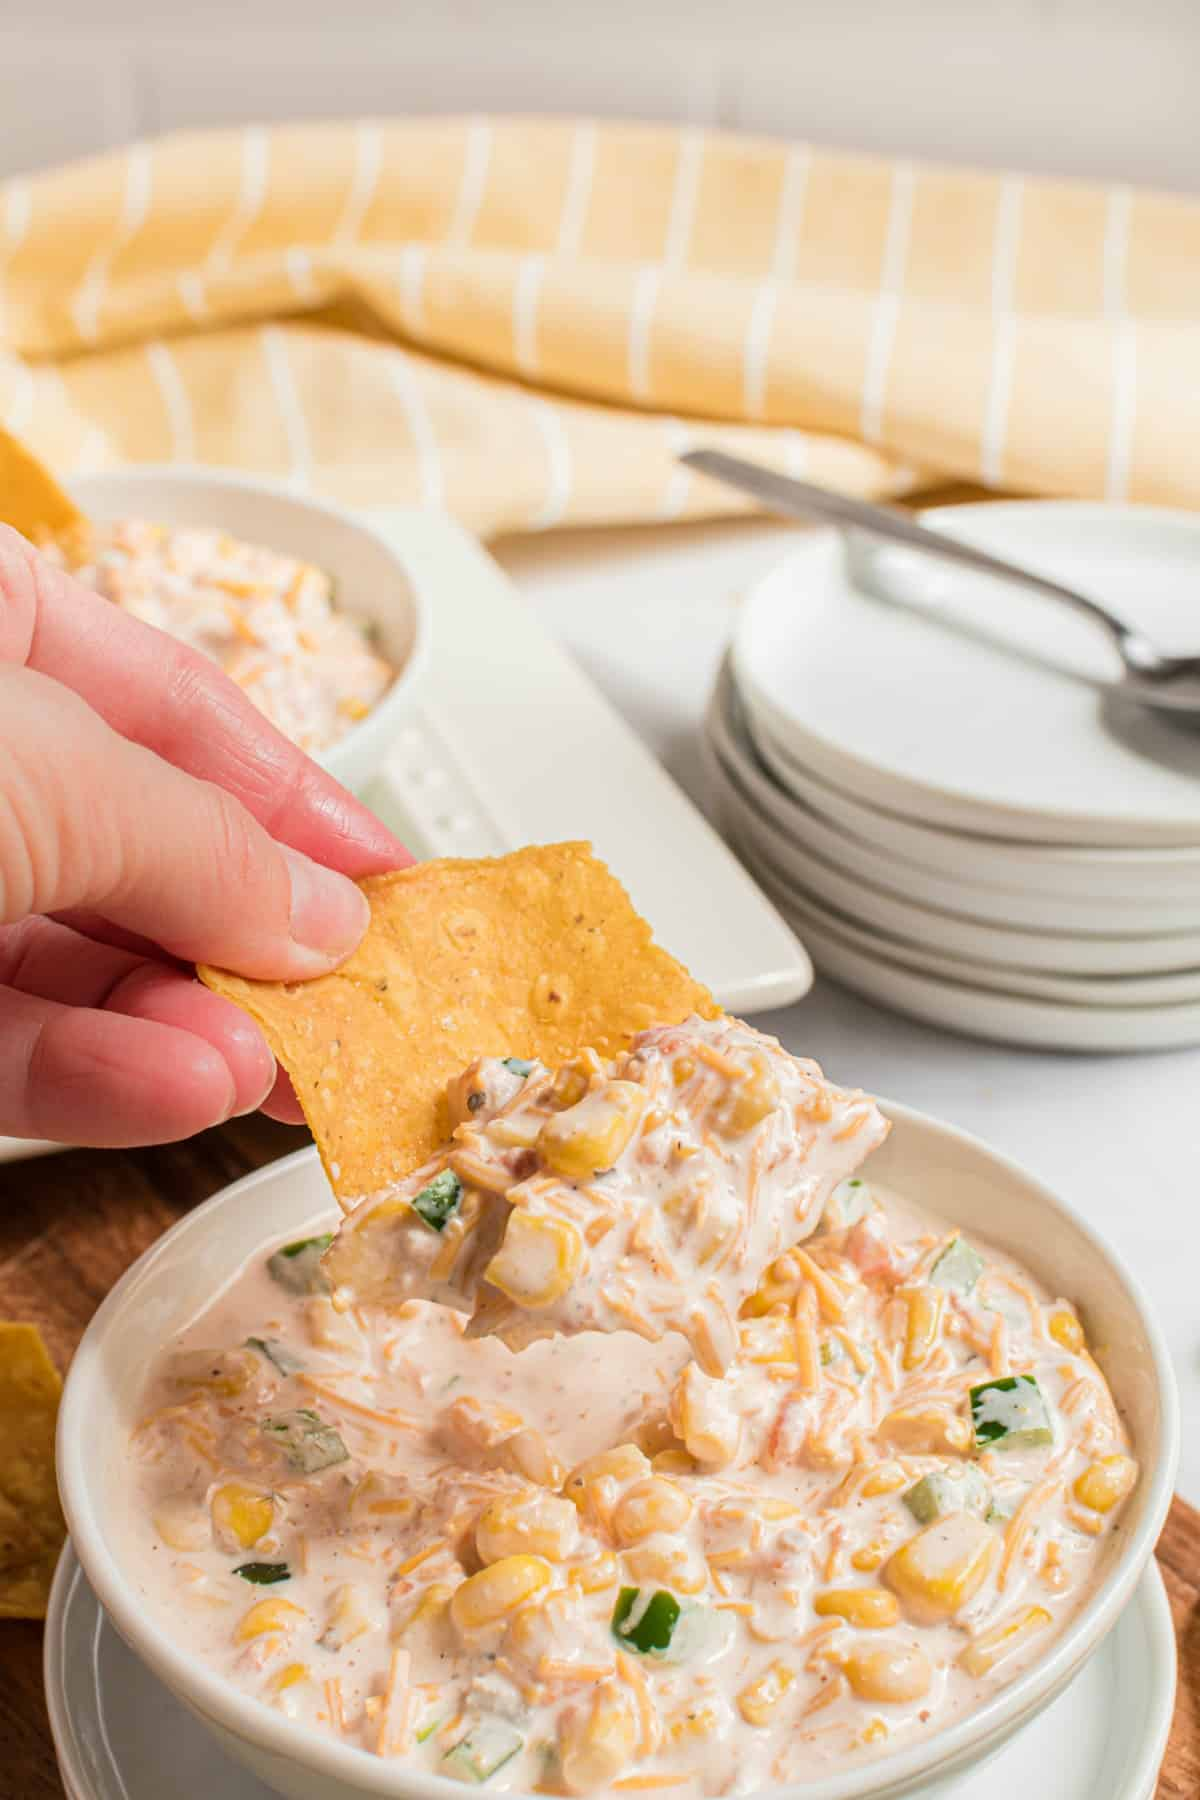 White bowl with corn dip and a tortilla chip being scooped in the dip.